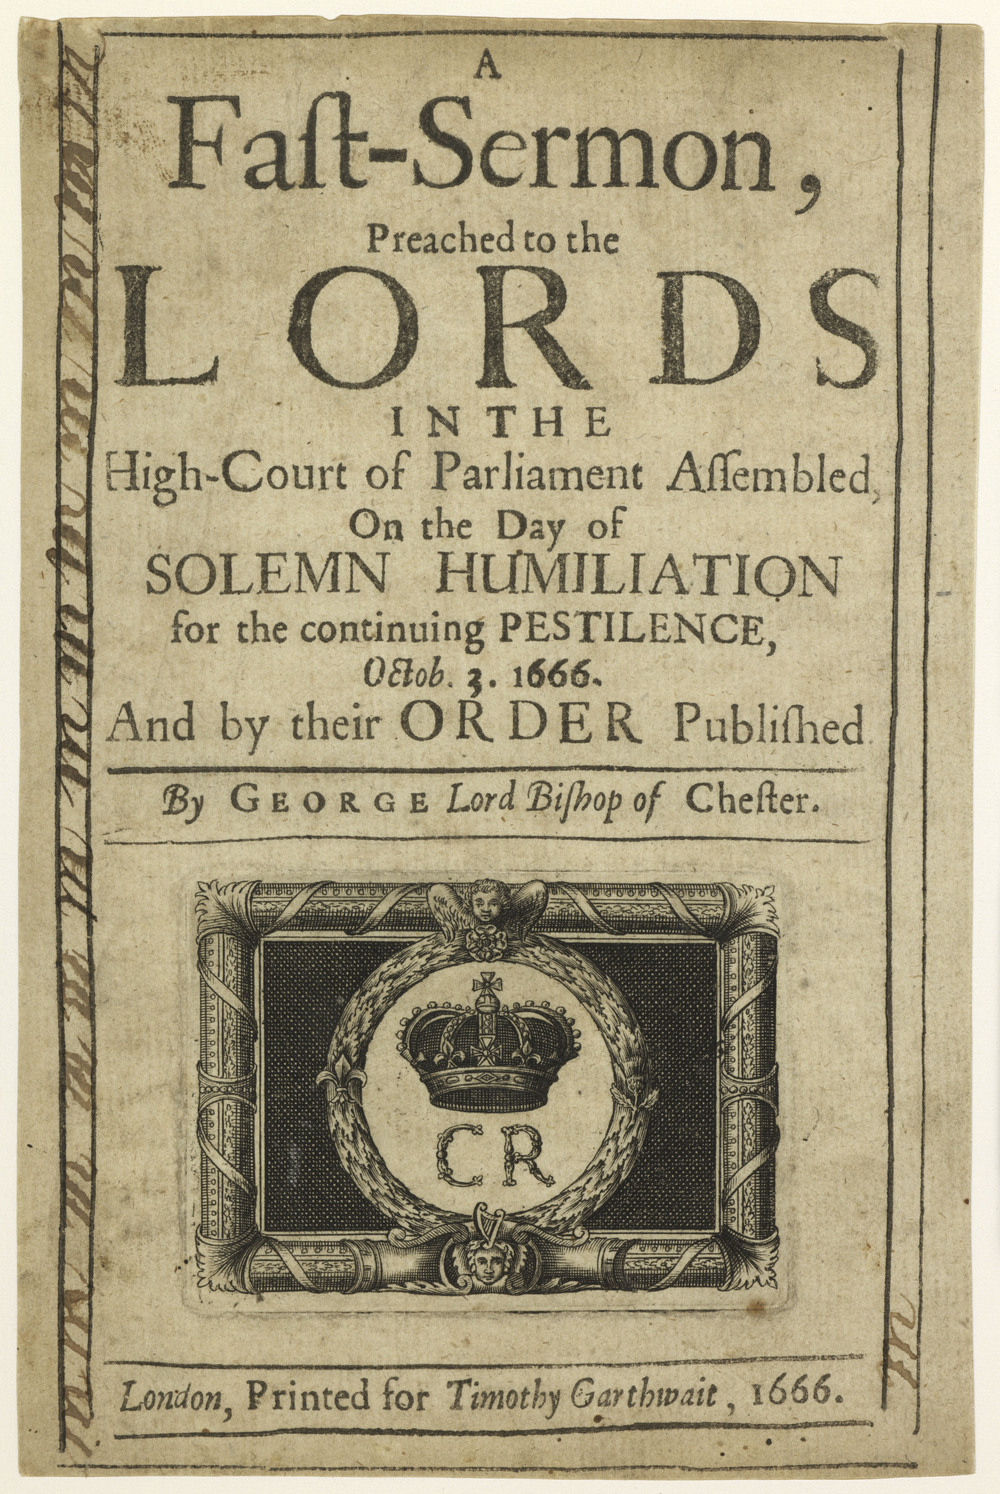 Title-page to George Hall